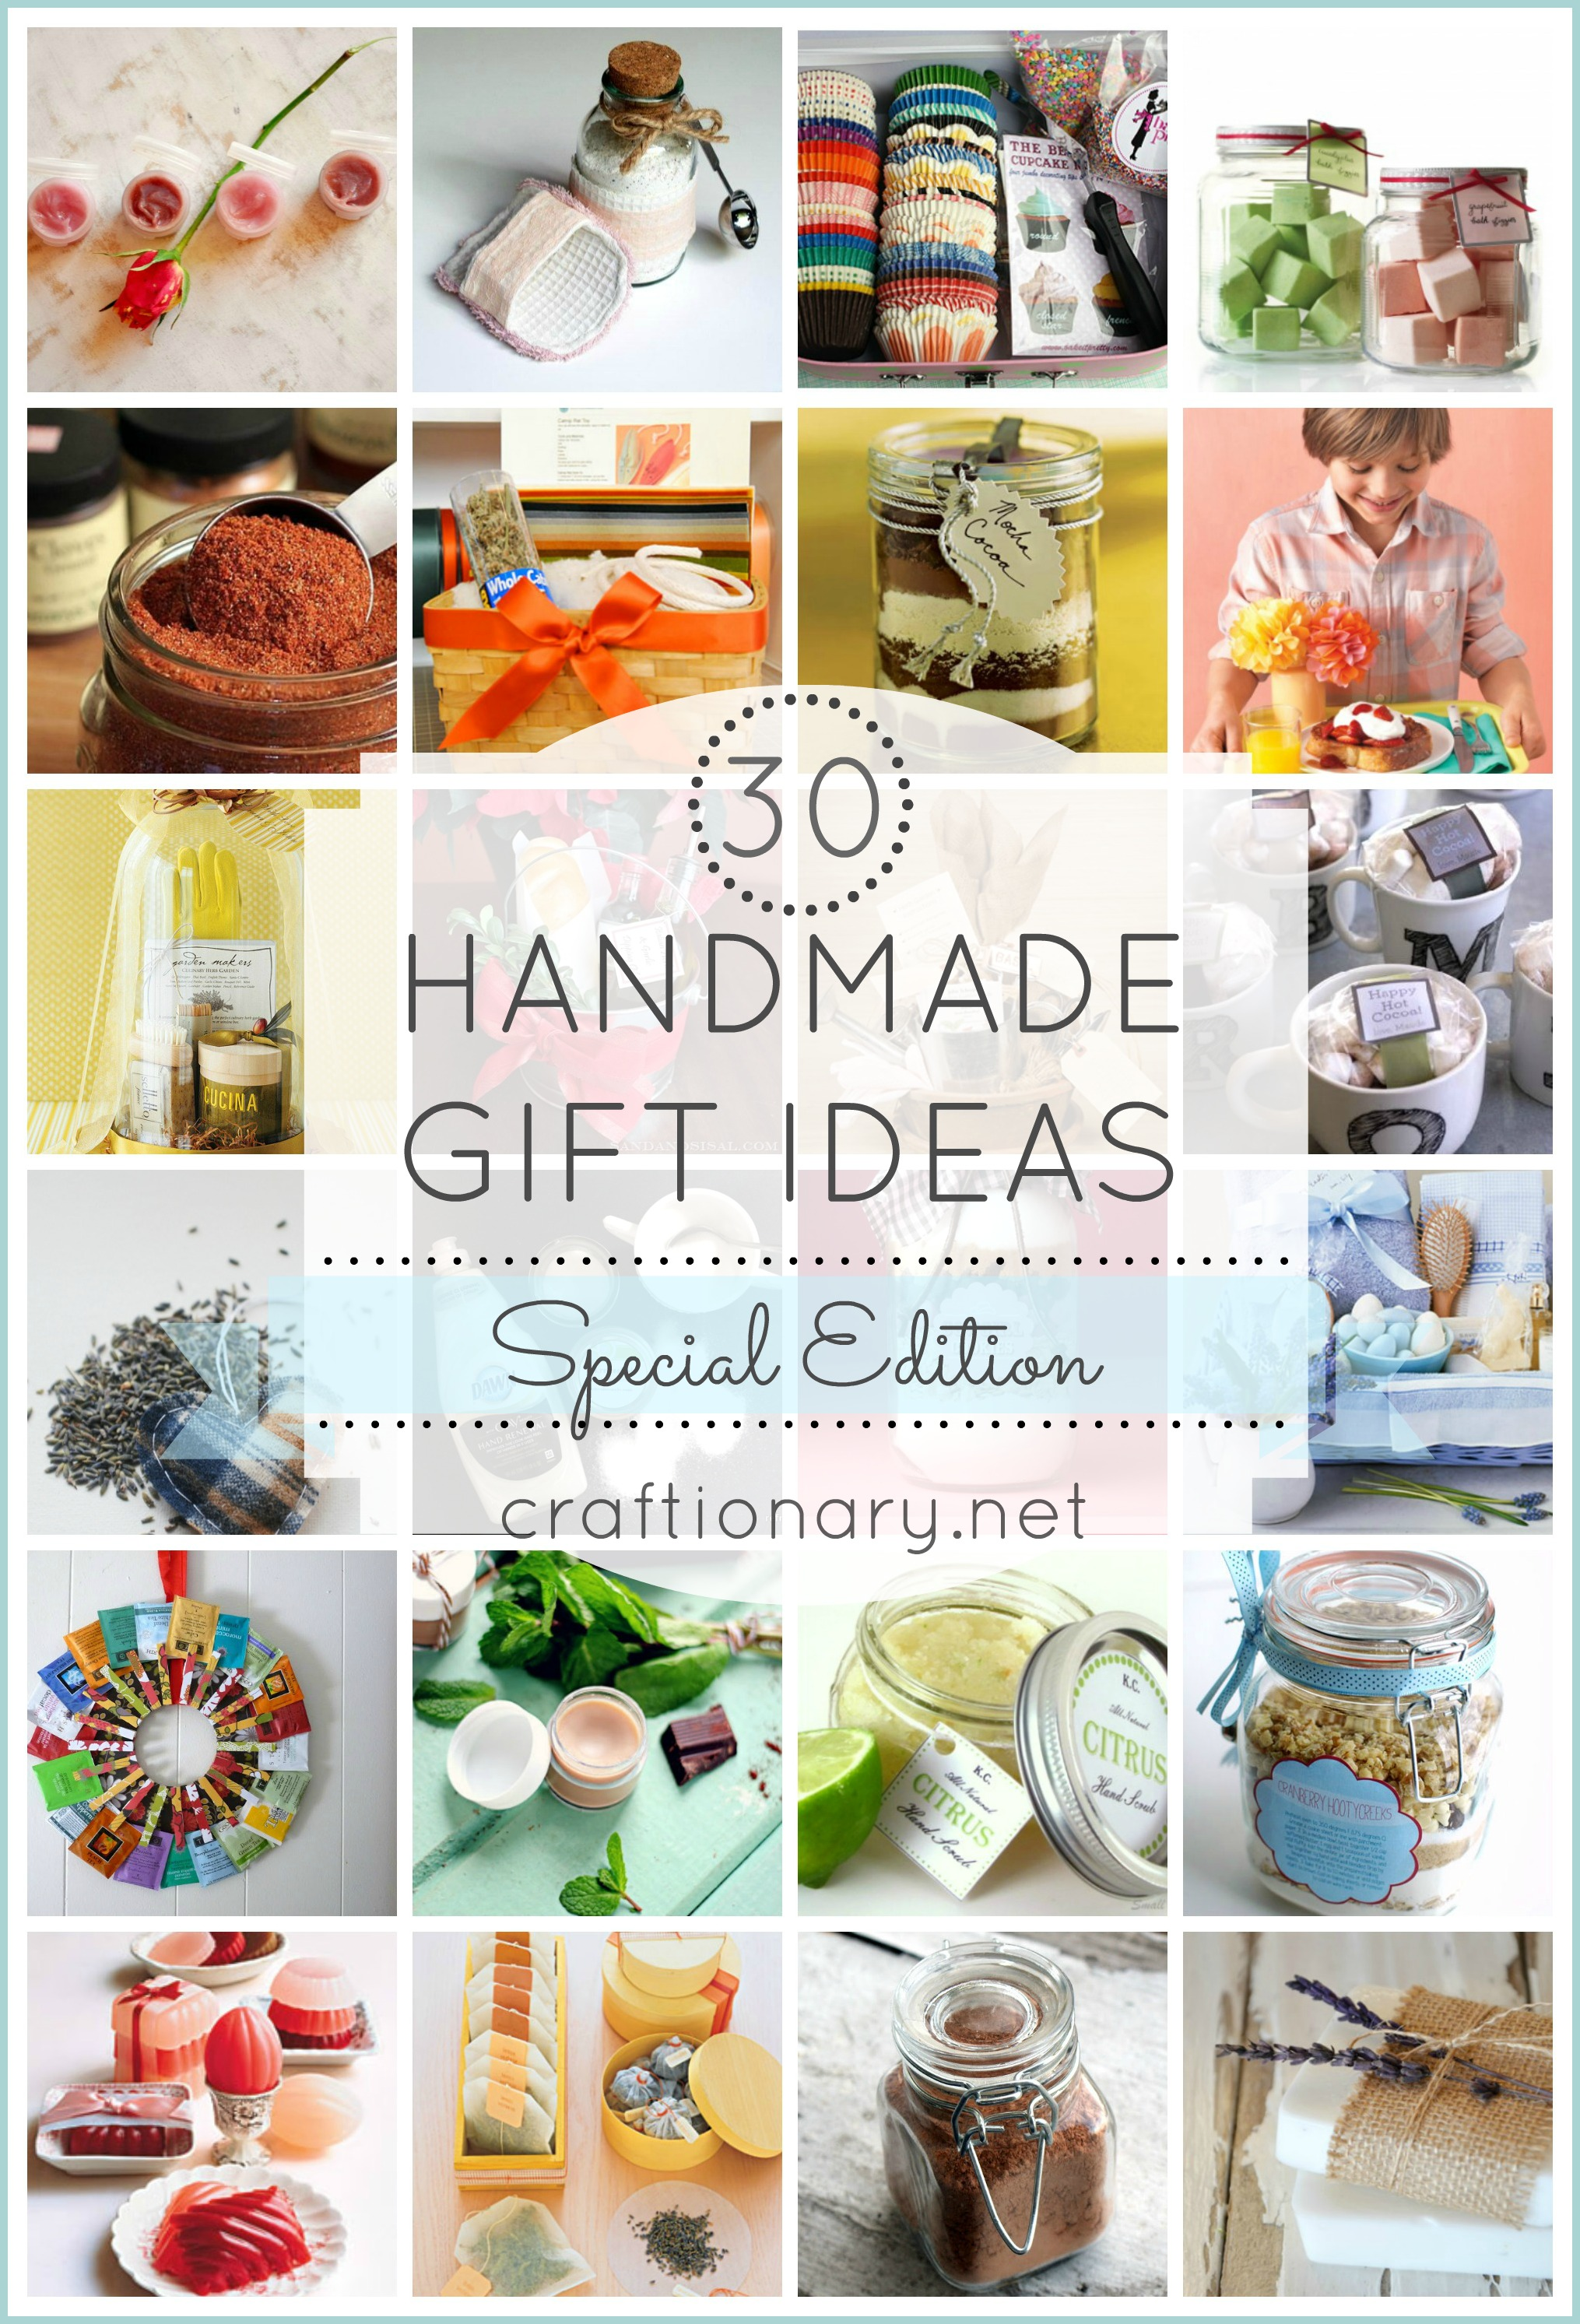 Craftionary for Handmade anniversary gift ideas